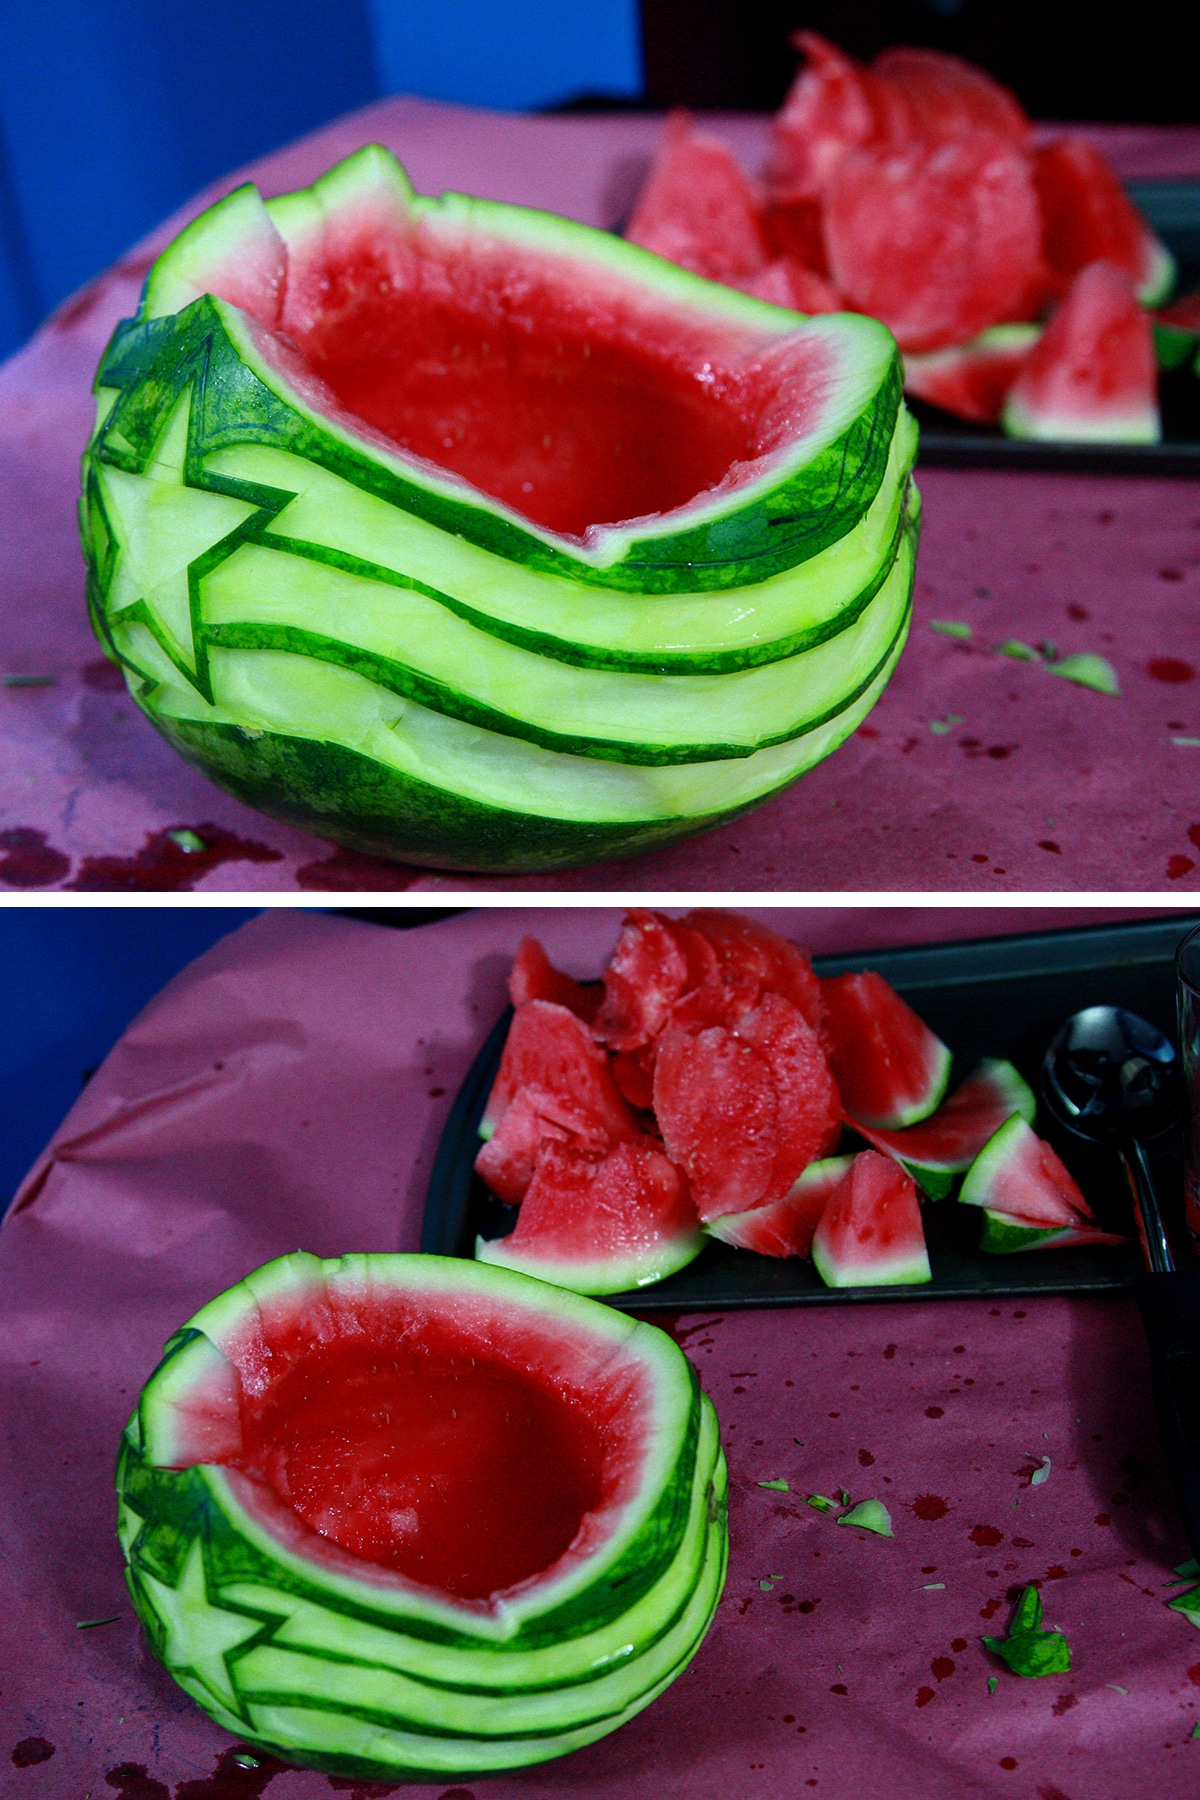 A two part image showing the center of the watermelon being hollowed out.